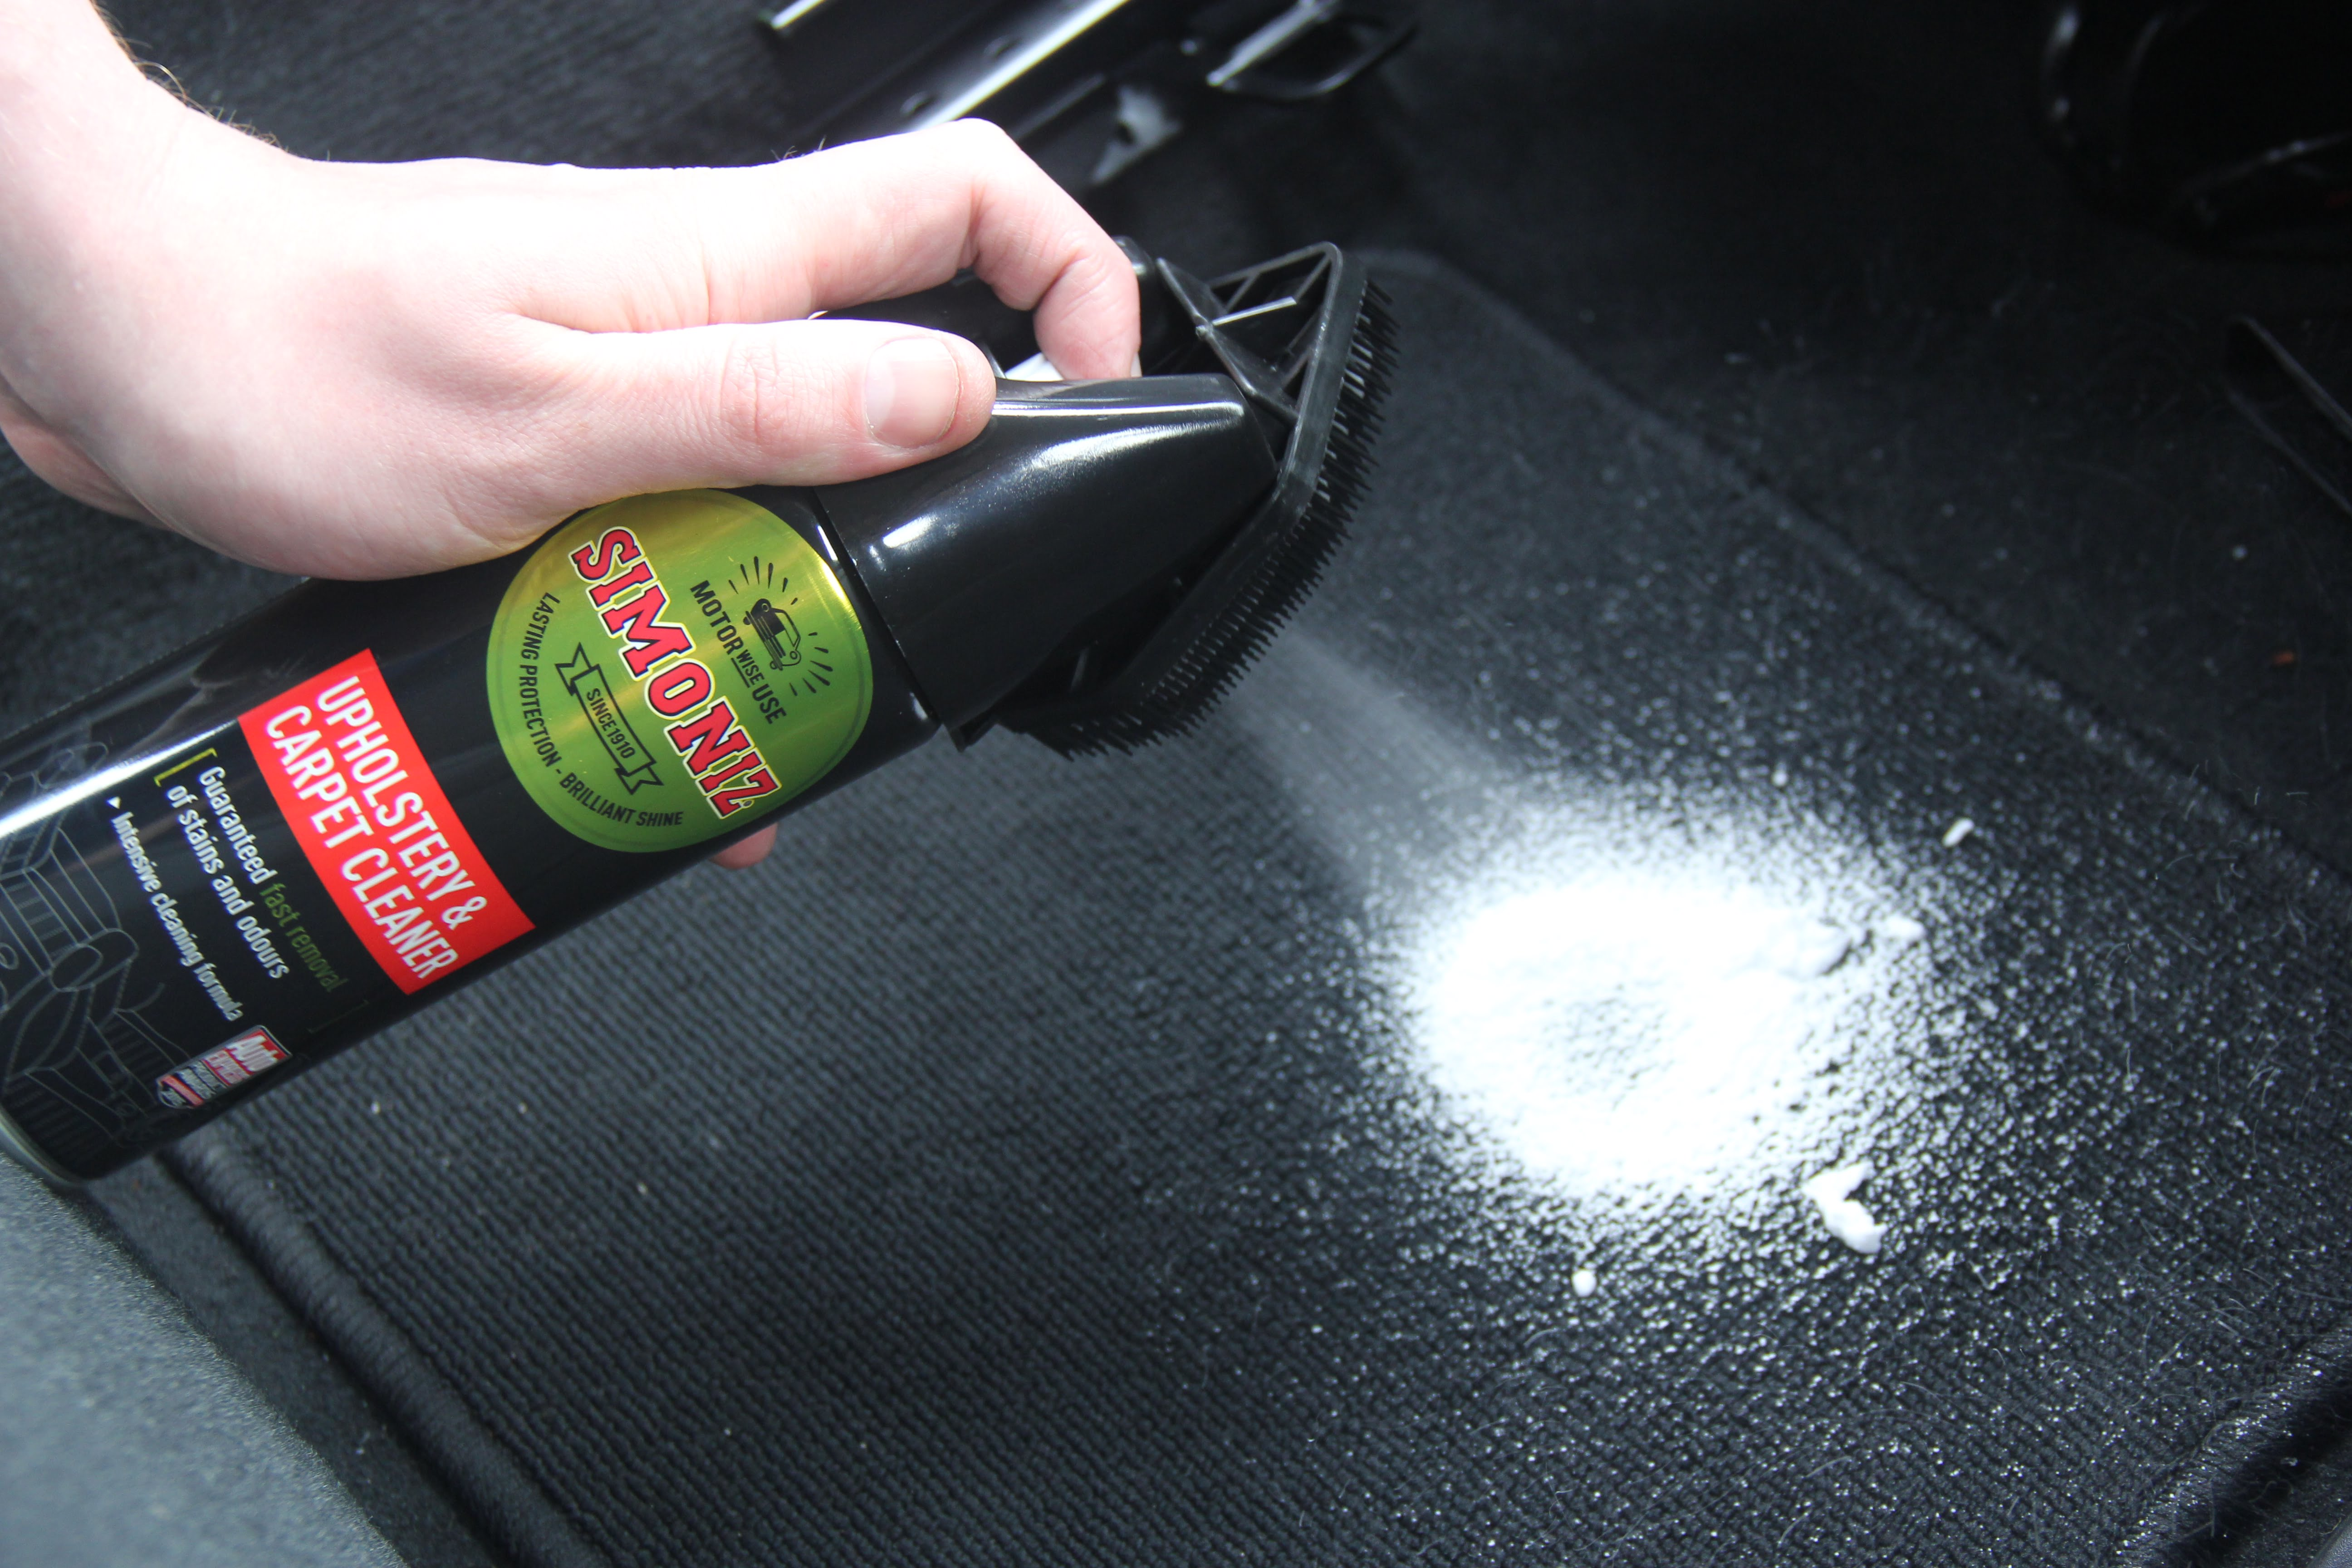 How to get beer smell out of carpet in car carpet vidalondon - How to get smoke smell out of car interior ...